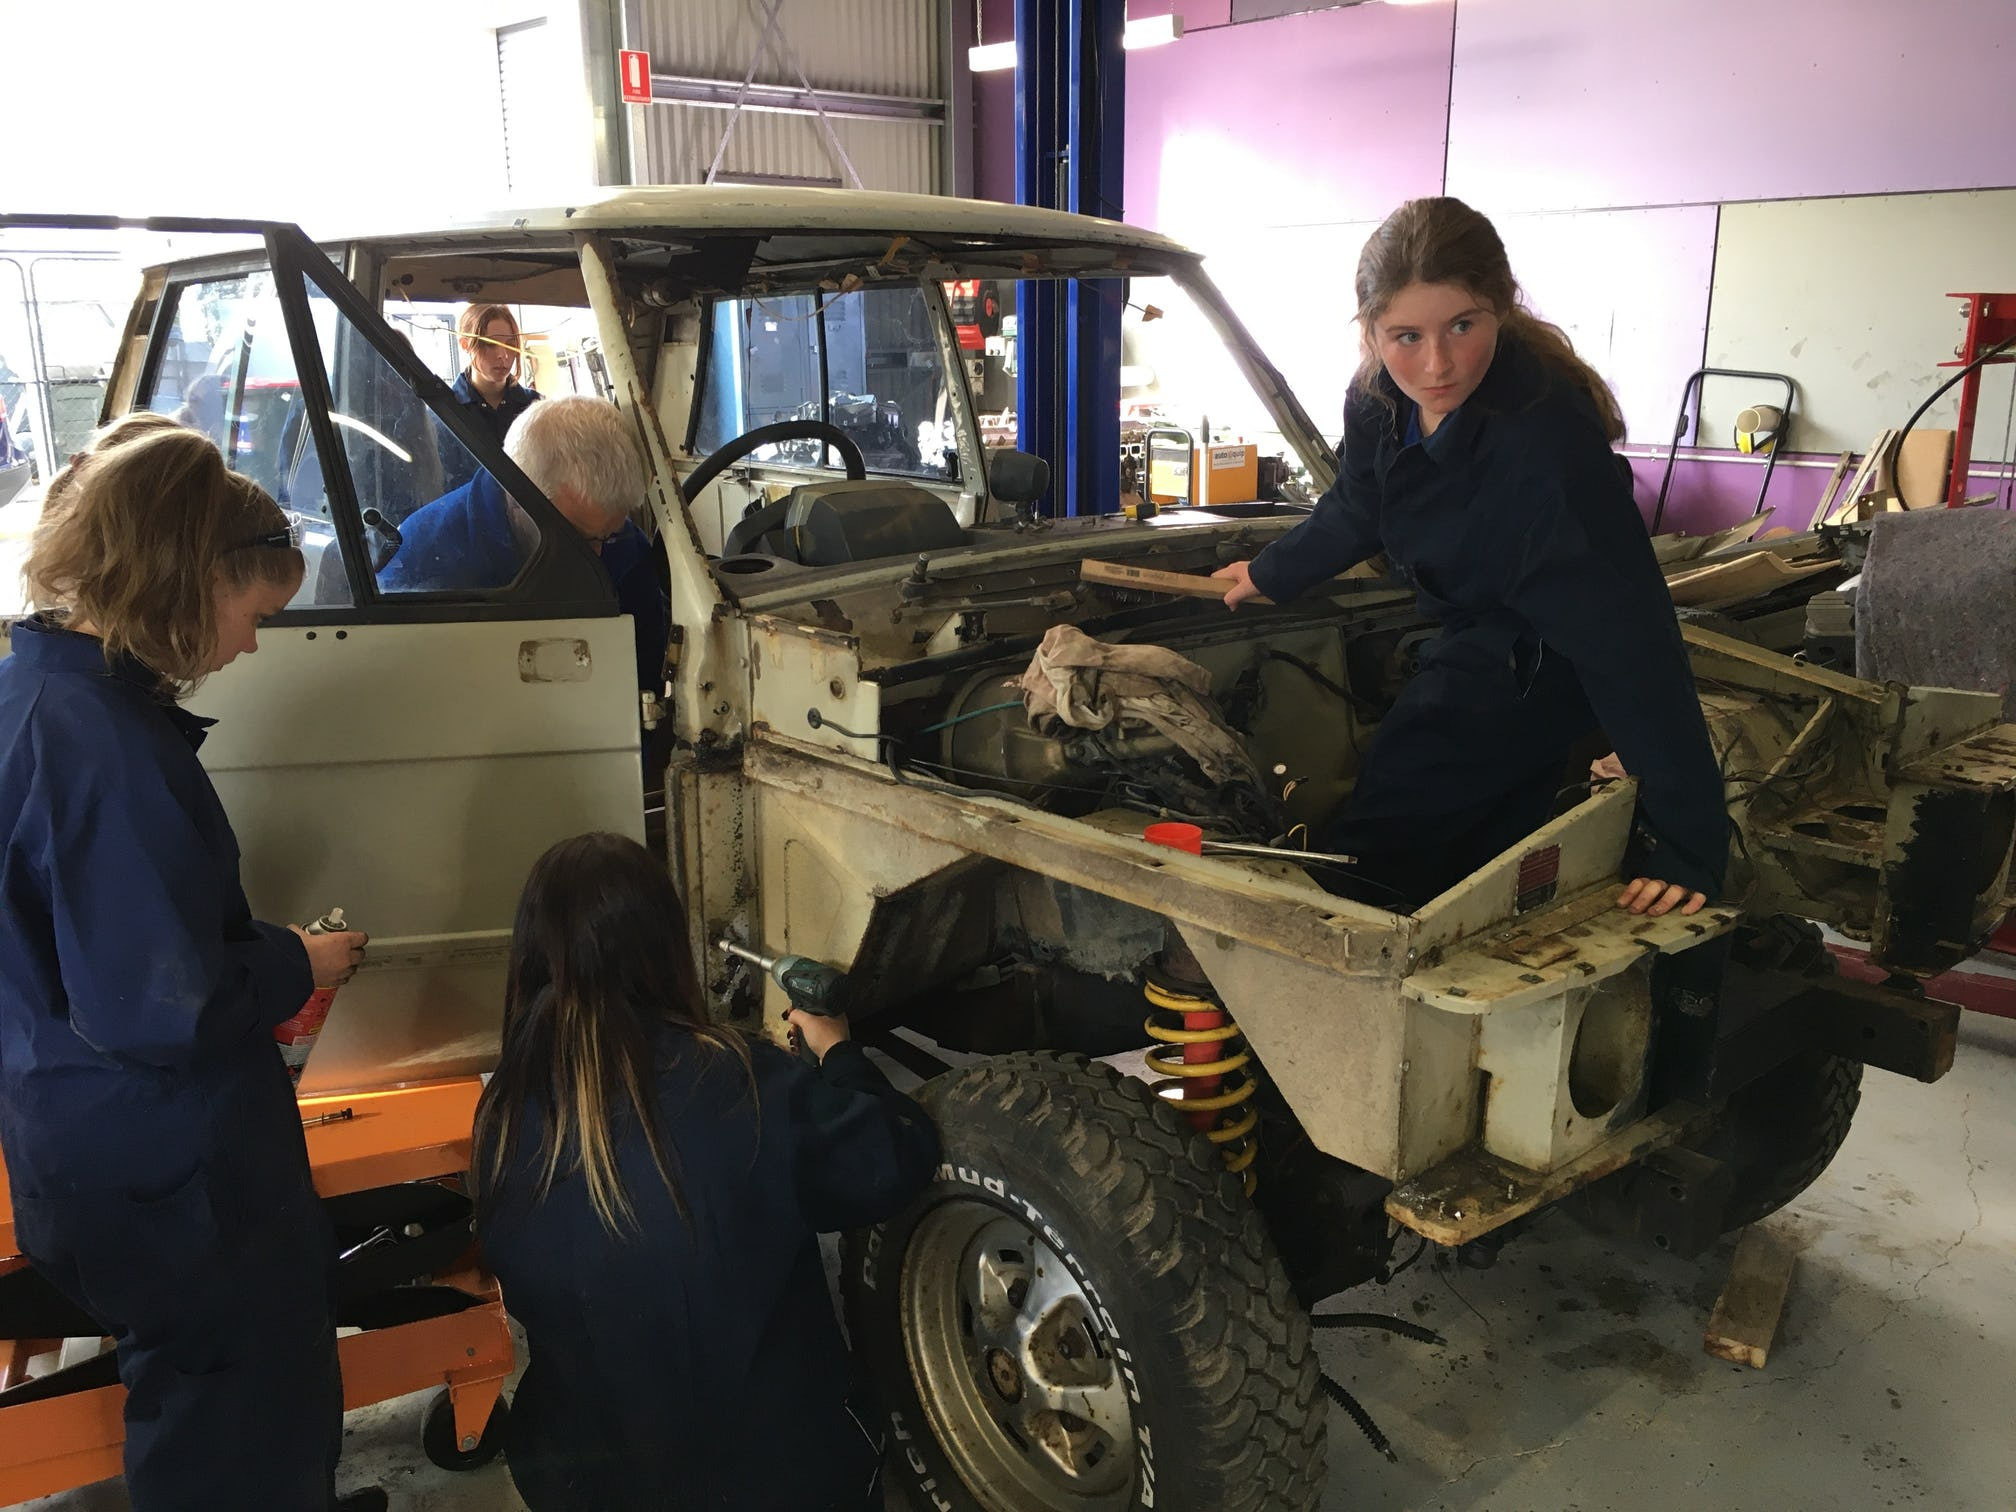 Students in the workshop at Bendigo South East Secondary College.